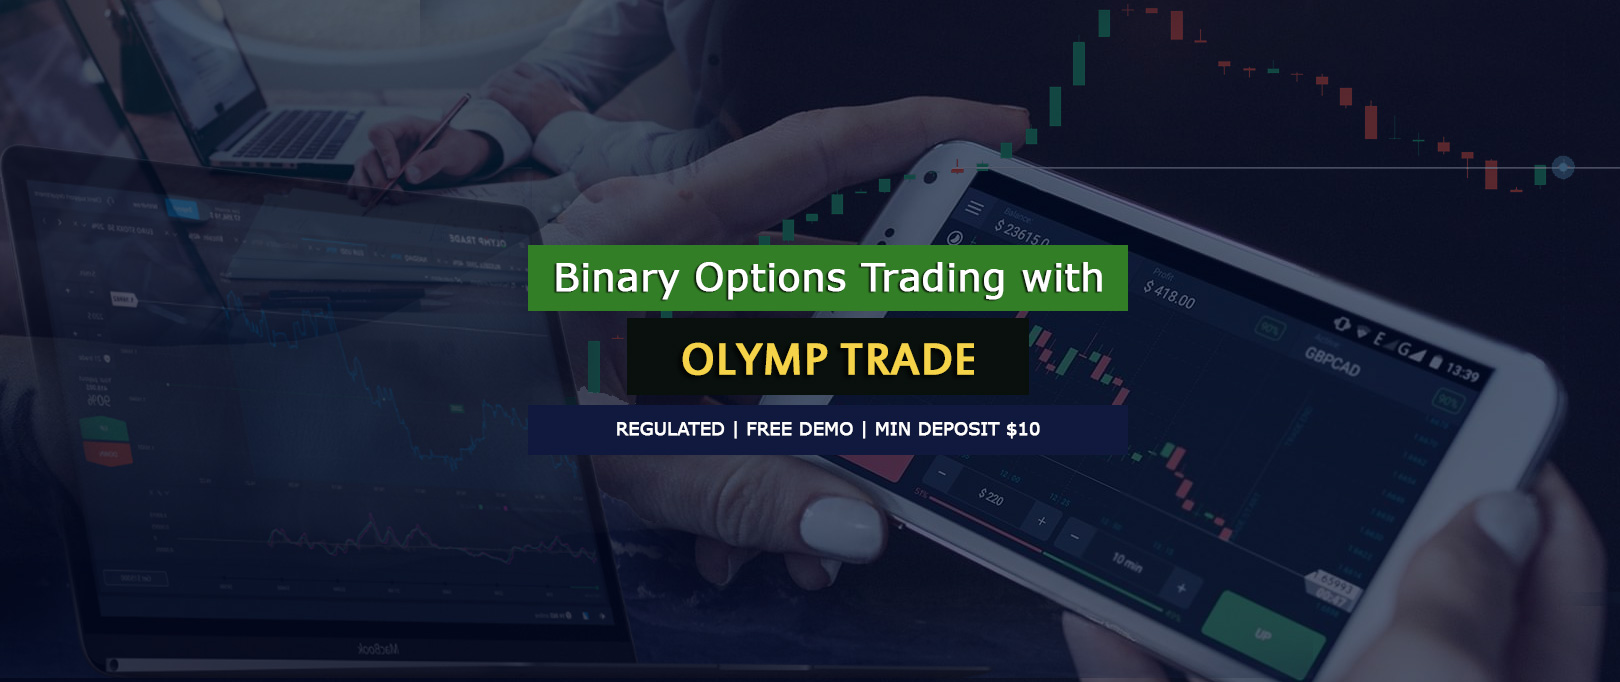 Olymp Trade Binary Options Broker in English for Sri Lankans by Prathilaba